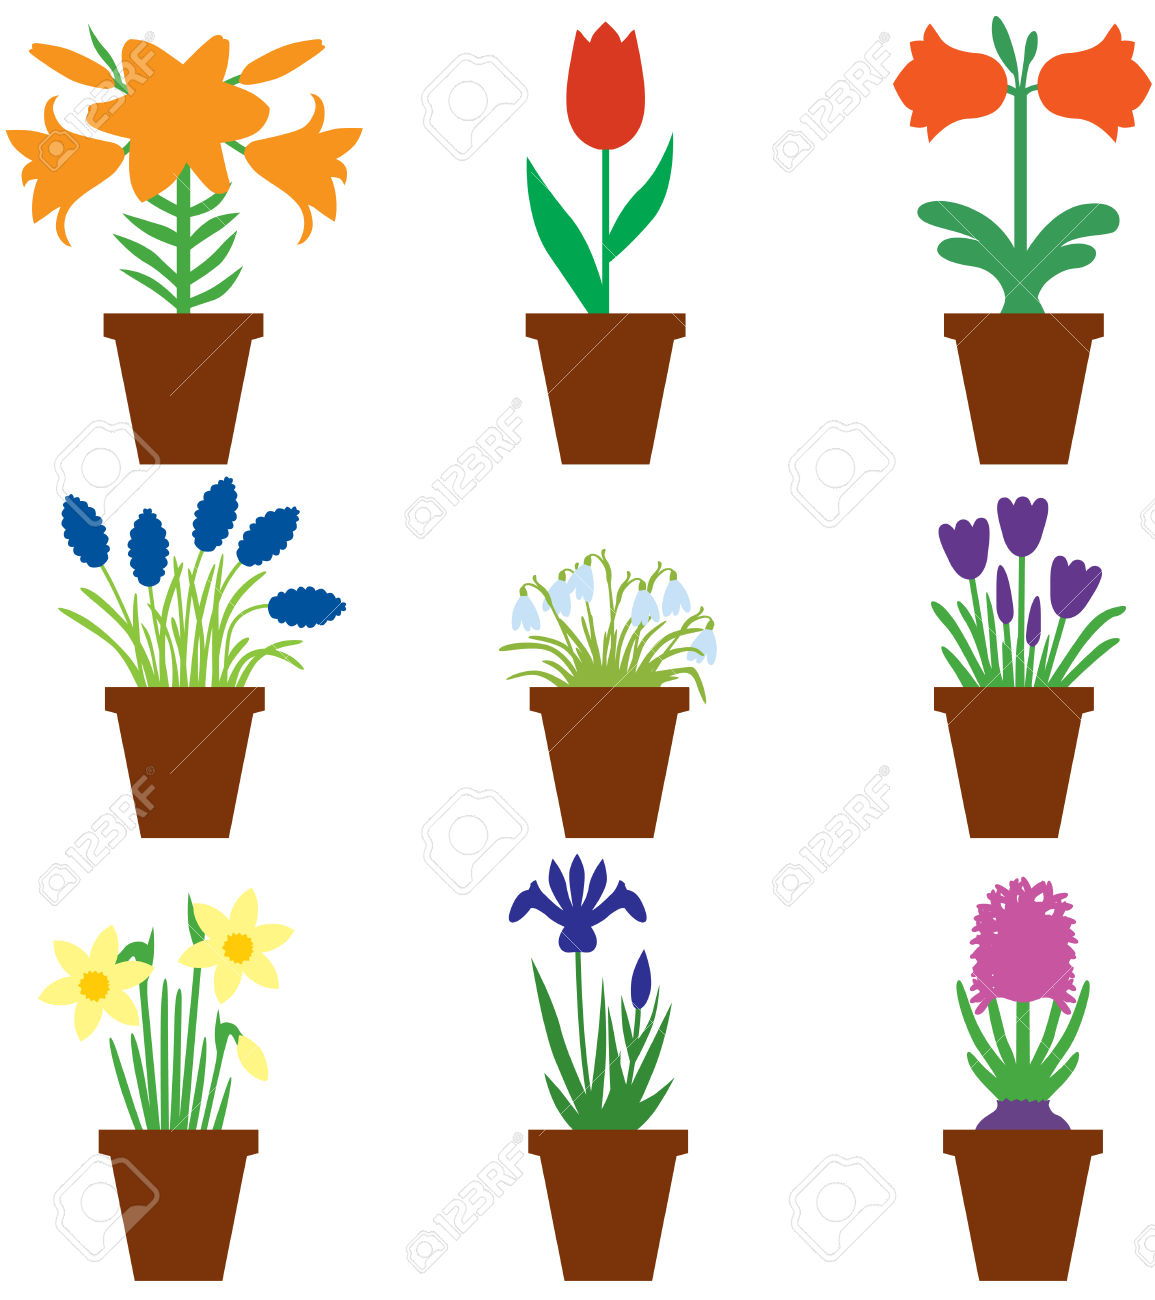 Set Of Color Images Of Bulbs Flower In Pots Royalty Free Cliparts.